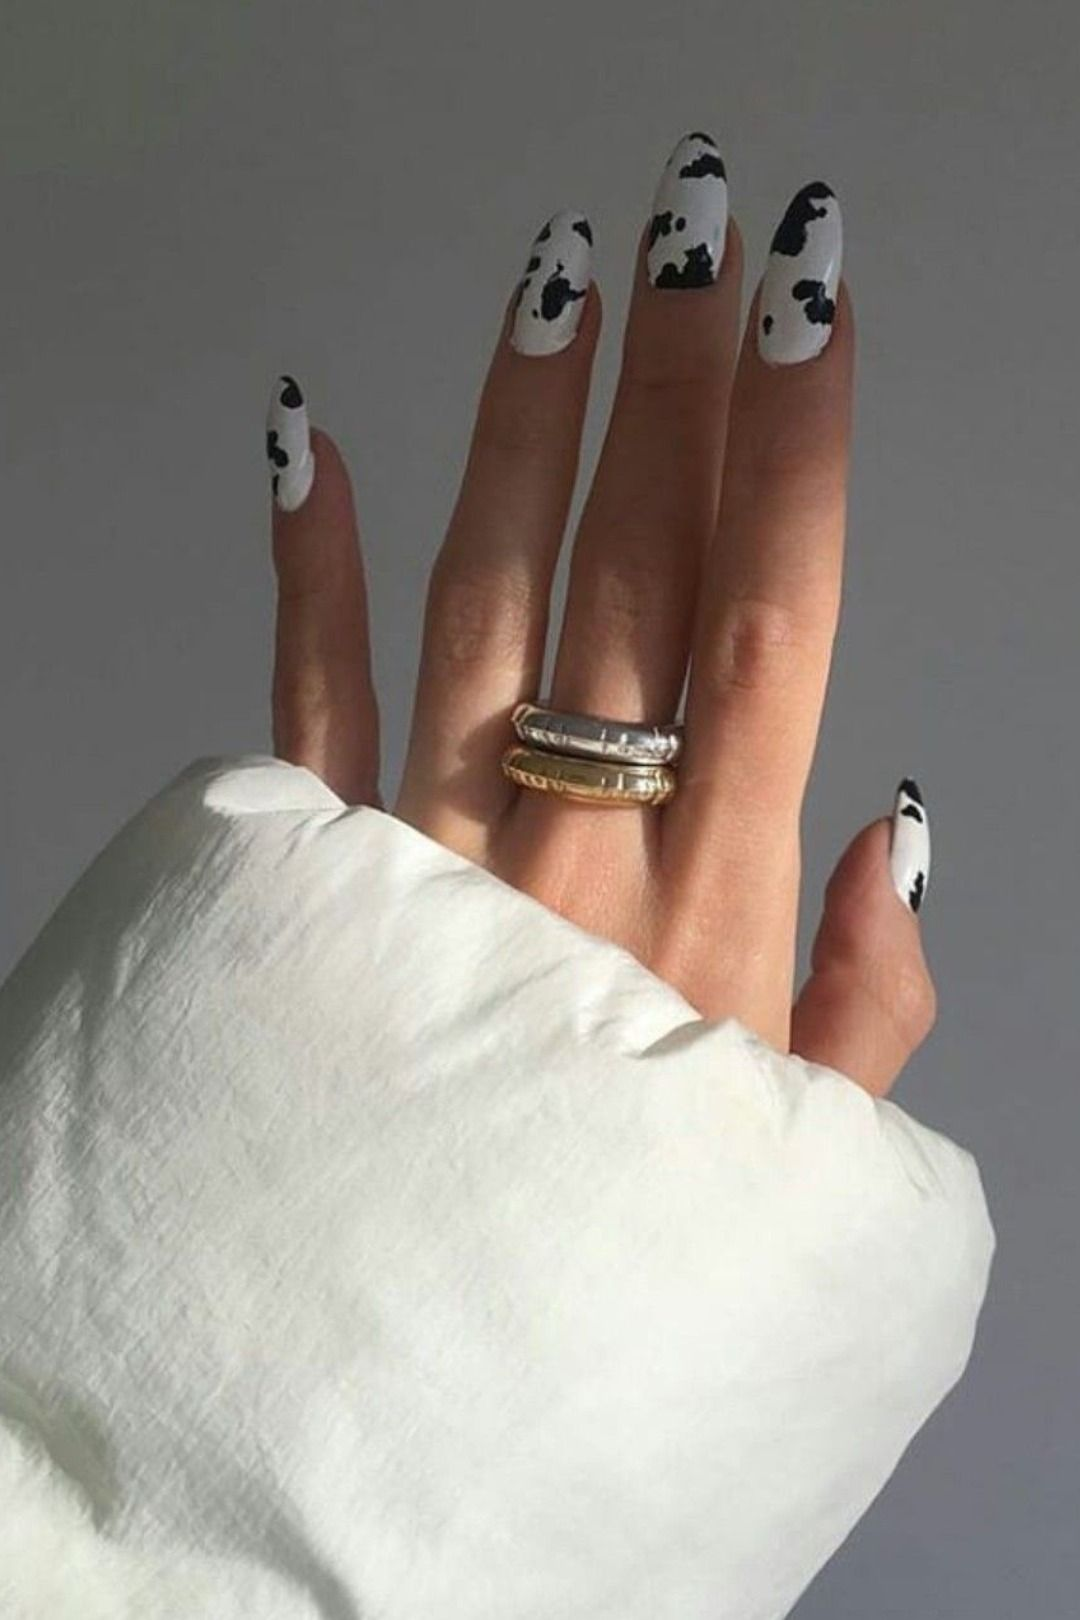 Beauty | Ariana Grande | Cow | Cow Print | Nails | Gel Nails | Acrylic Nails | Nagels | Long | Silver | Gold | Ring | Koeien Print | Zilvere | Goude | Ring | Inspiration | More On Fashionchick